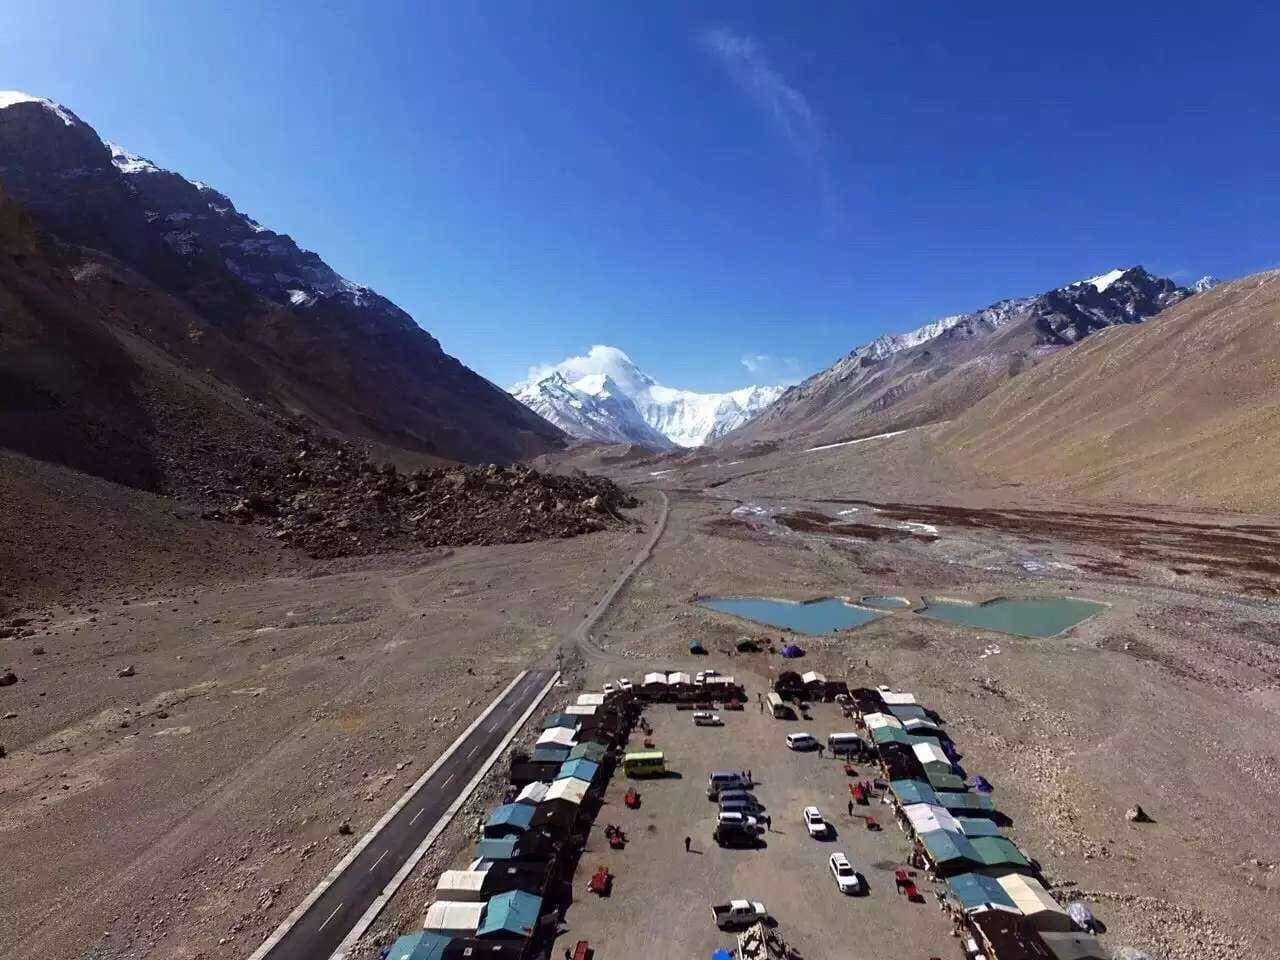 Everest Base Camp in Tibet